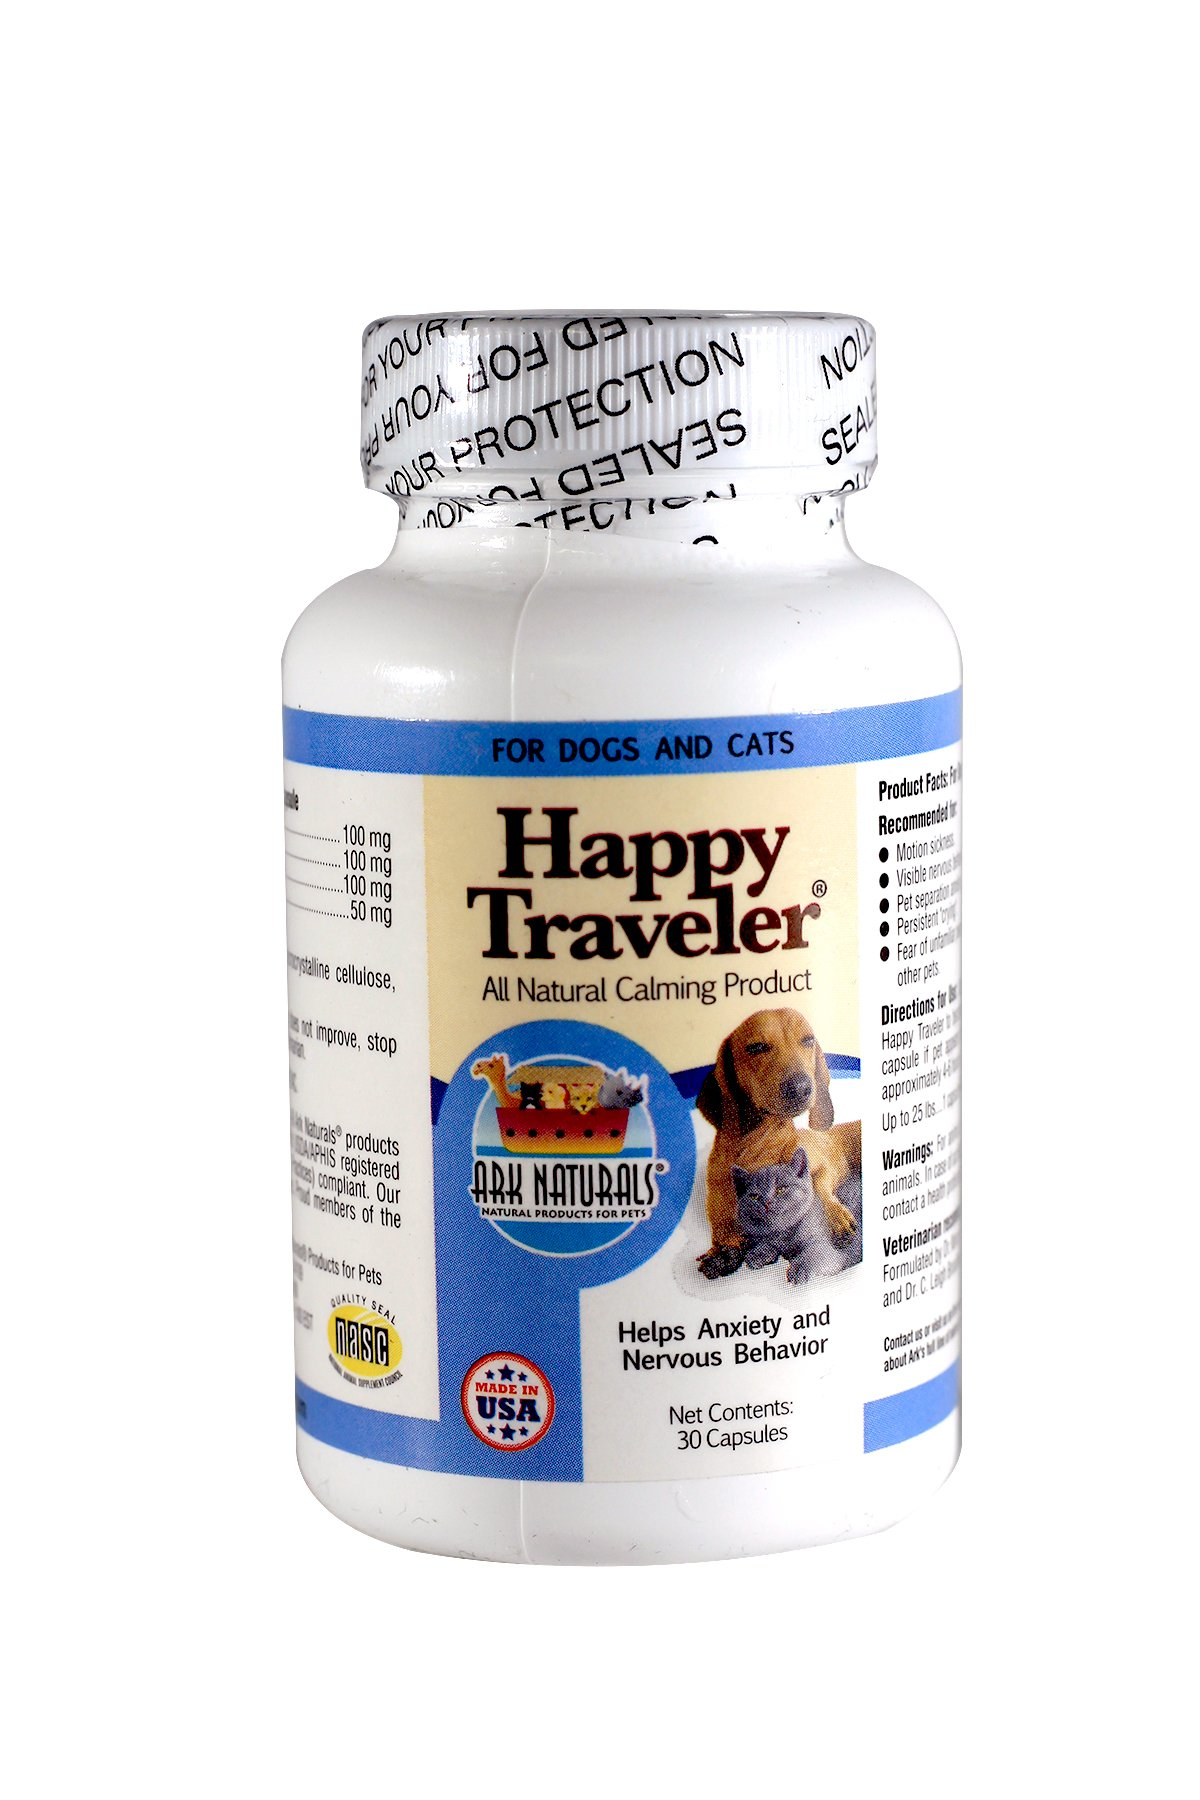 Ark Naturals Happy Traveler for Dogs & Cats 30-Count Capsules (Pack of 3)